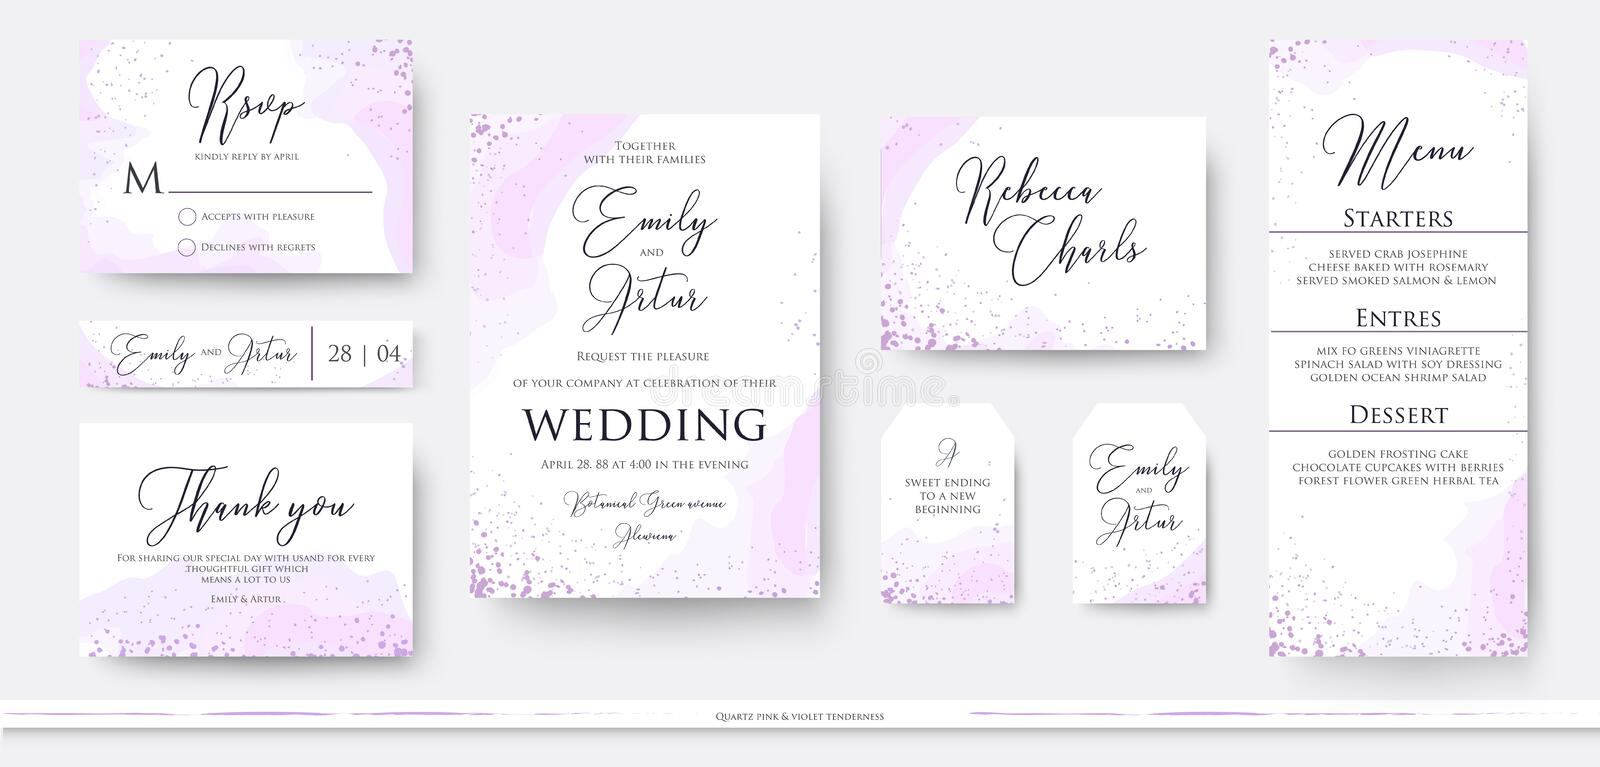 Wedding invite thank you, rsvp menu card design set with abstract watercolor decoration in light tender dusty pink, rosy and viol vector illustration